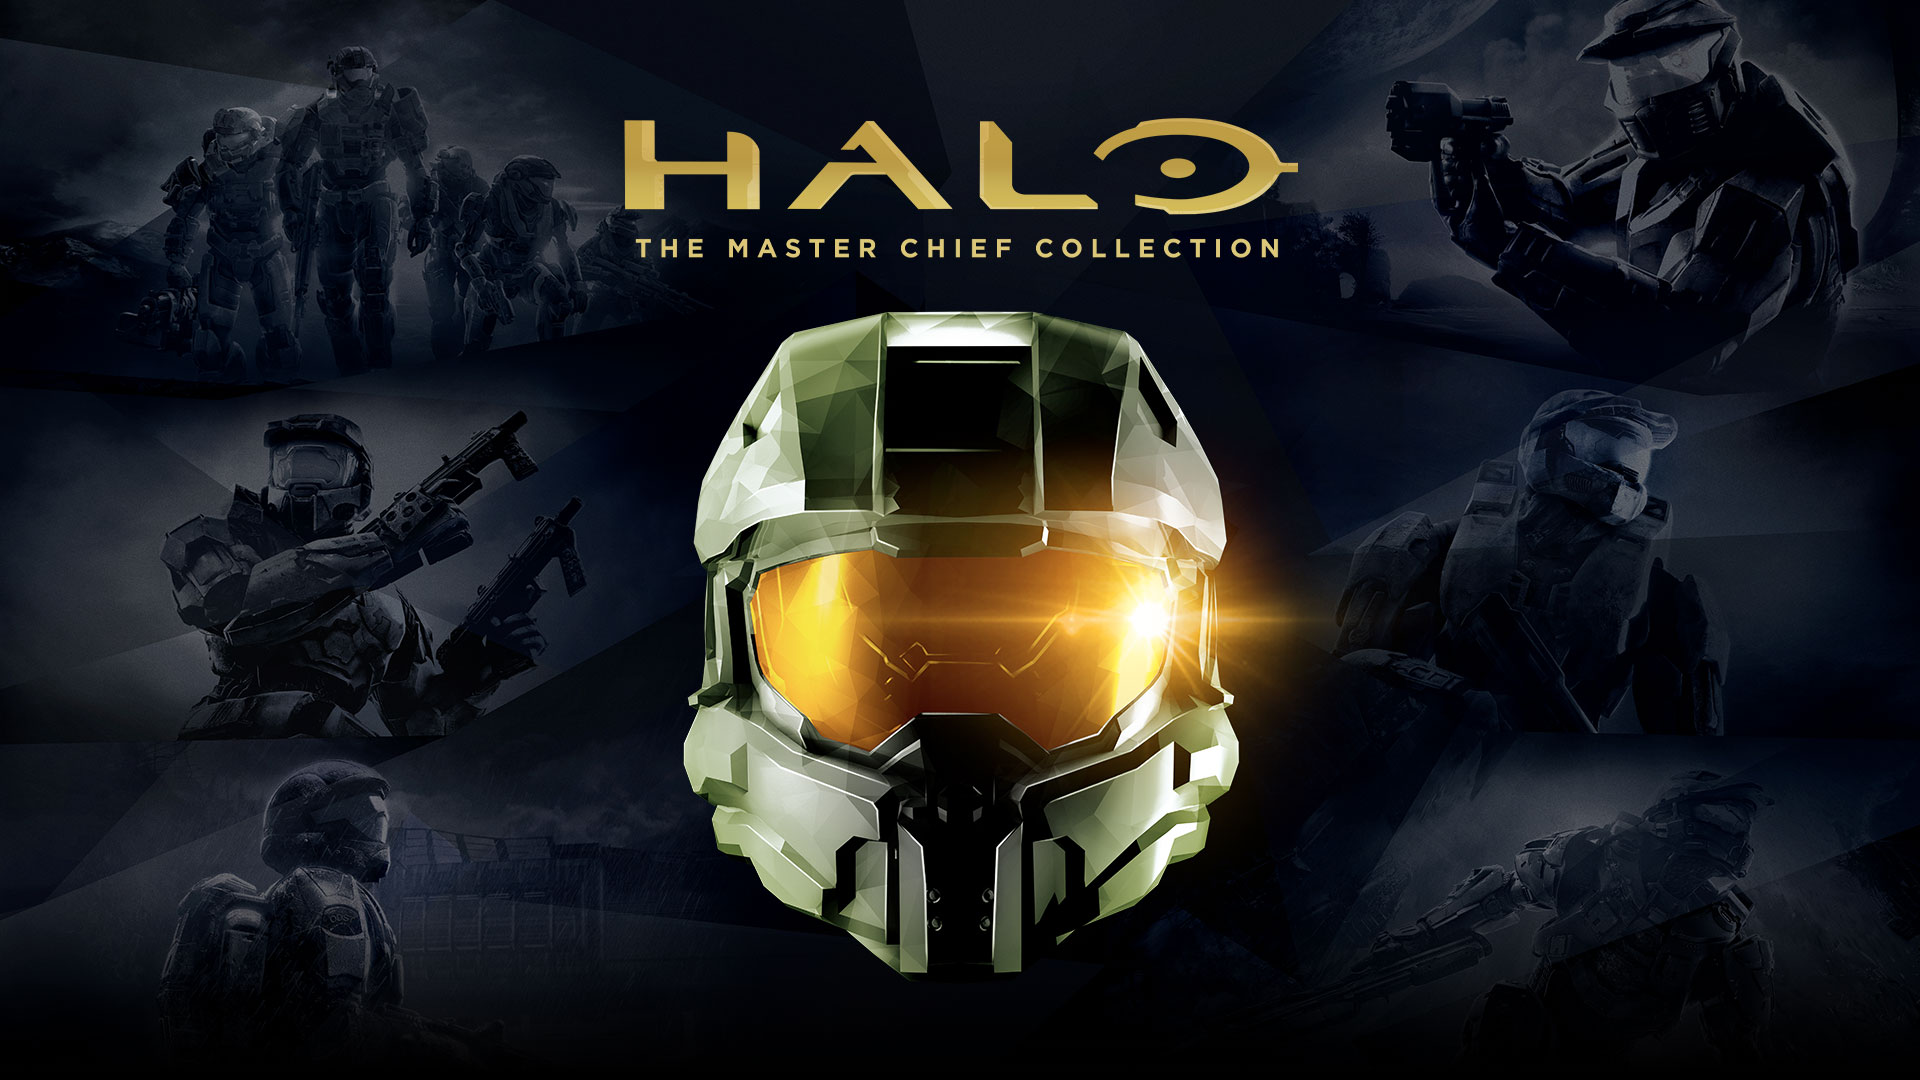 Halo The Master Chief Collection, Master Chief hjelmen mot gjennomsiktig bakgrunn av Halo box shots